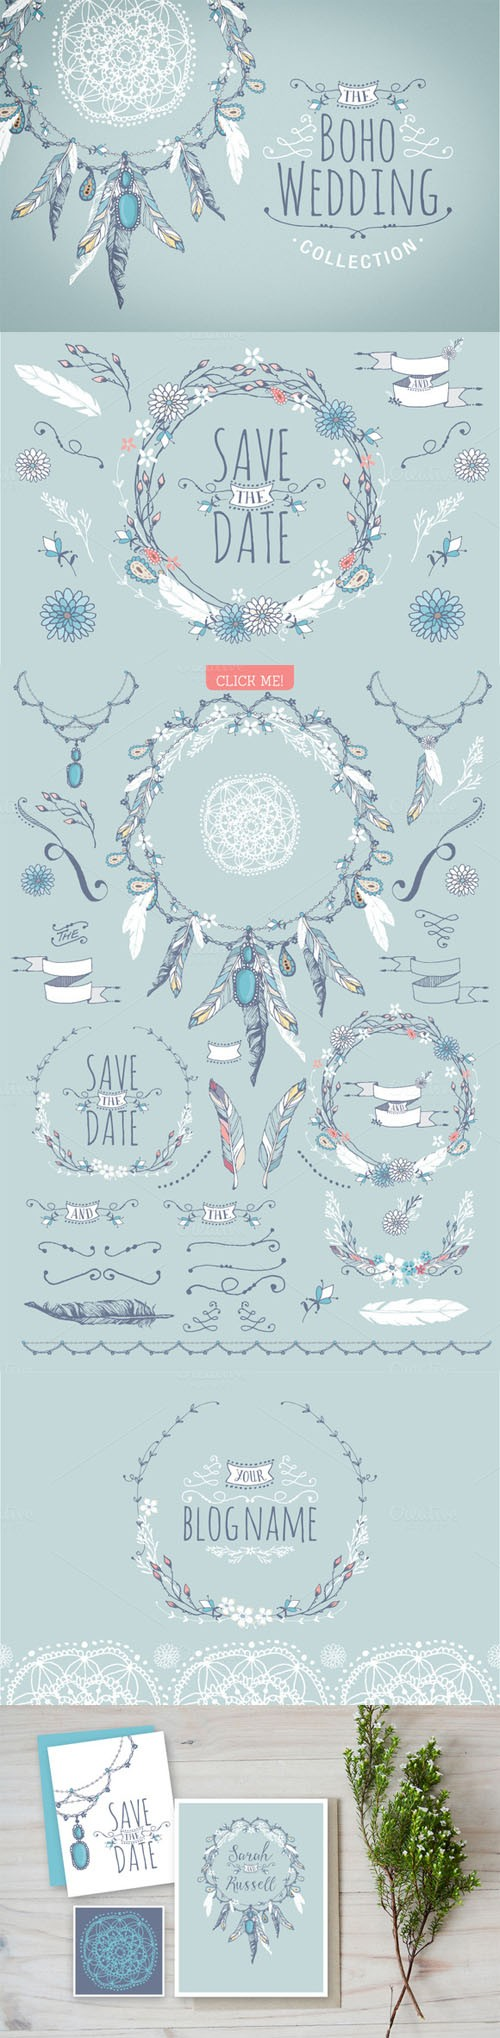 Creativemarket - Boho chic wedding & blog collection 73198